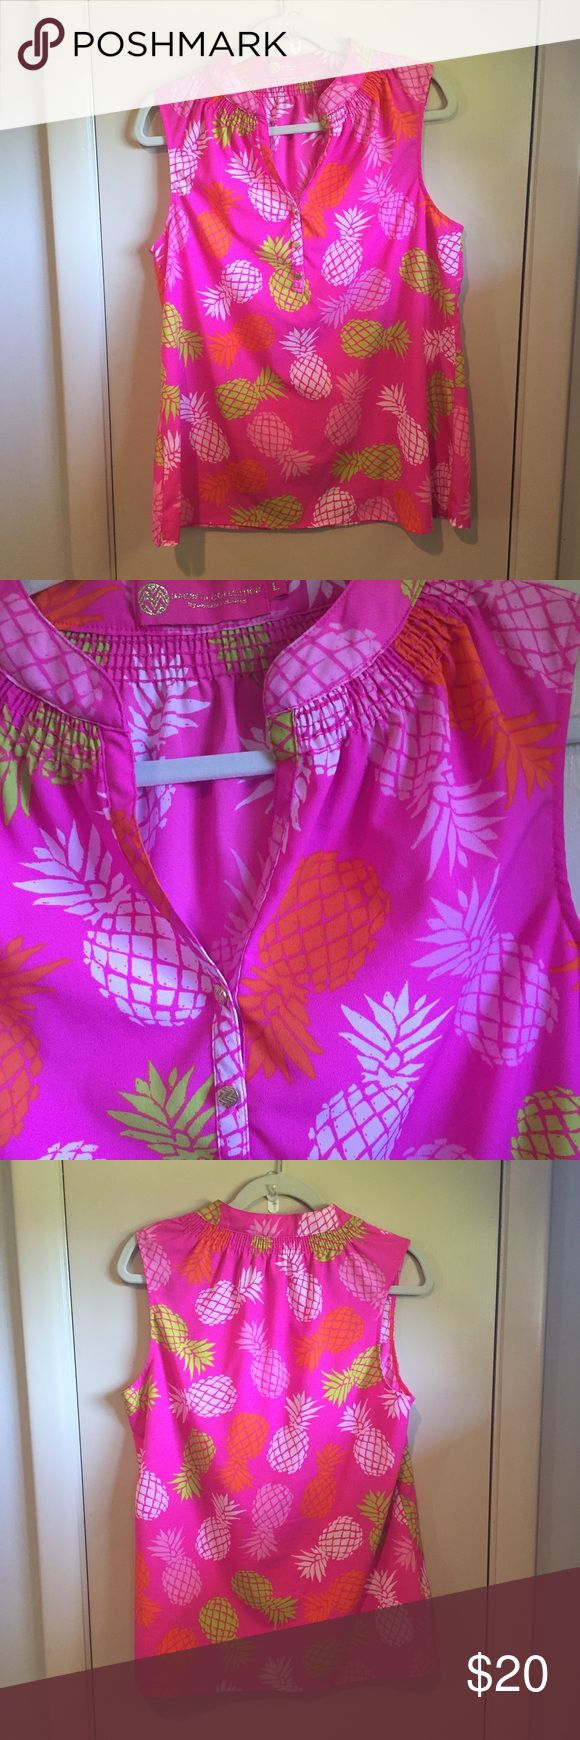 """Neon pineapple motif MacBeth sleeveless bff blouse Bright colored MacBeth collection sleeveless bff blouse. Smocked neckline with gold tone buttons. Lightweight. 100% polyester. 26.5"""" length. Excellent condition. MacBeth  Tops Blouses"""